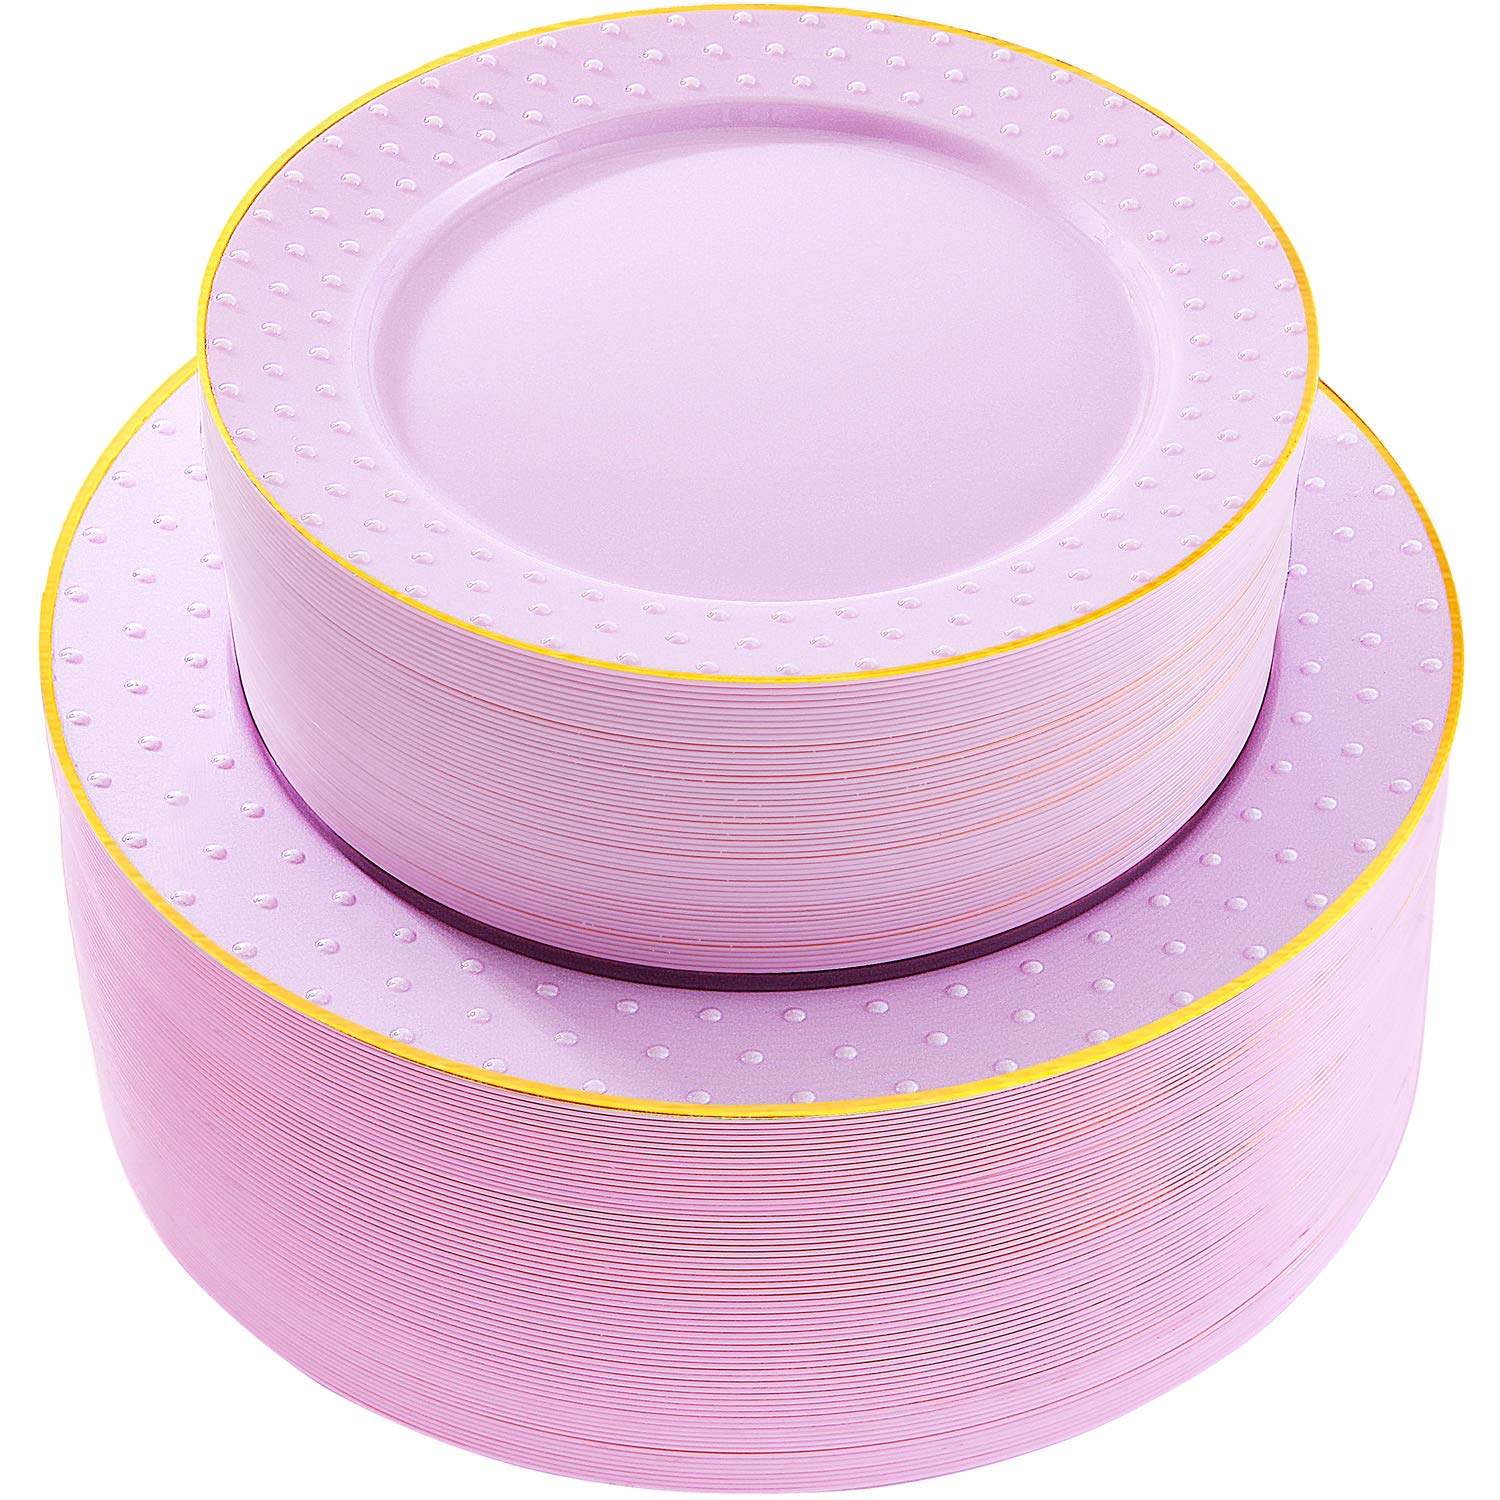 102pcs Disposable Plastic Plates Purple Plastic Plates with Gold rim Durable Plastic Plates Heavy Duty 51 Dinner Plates and 51 Dessert Plates, Supernal by supernal